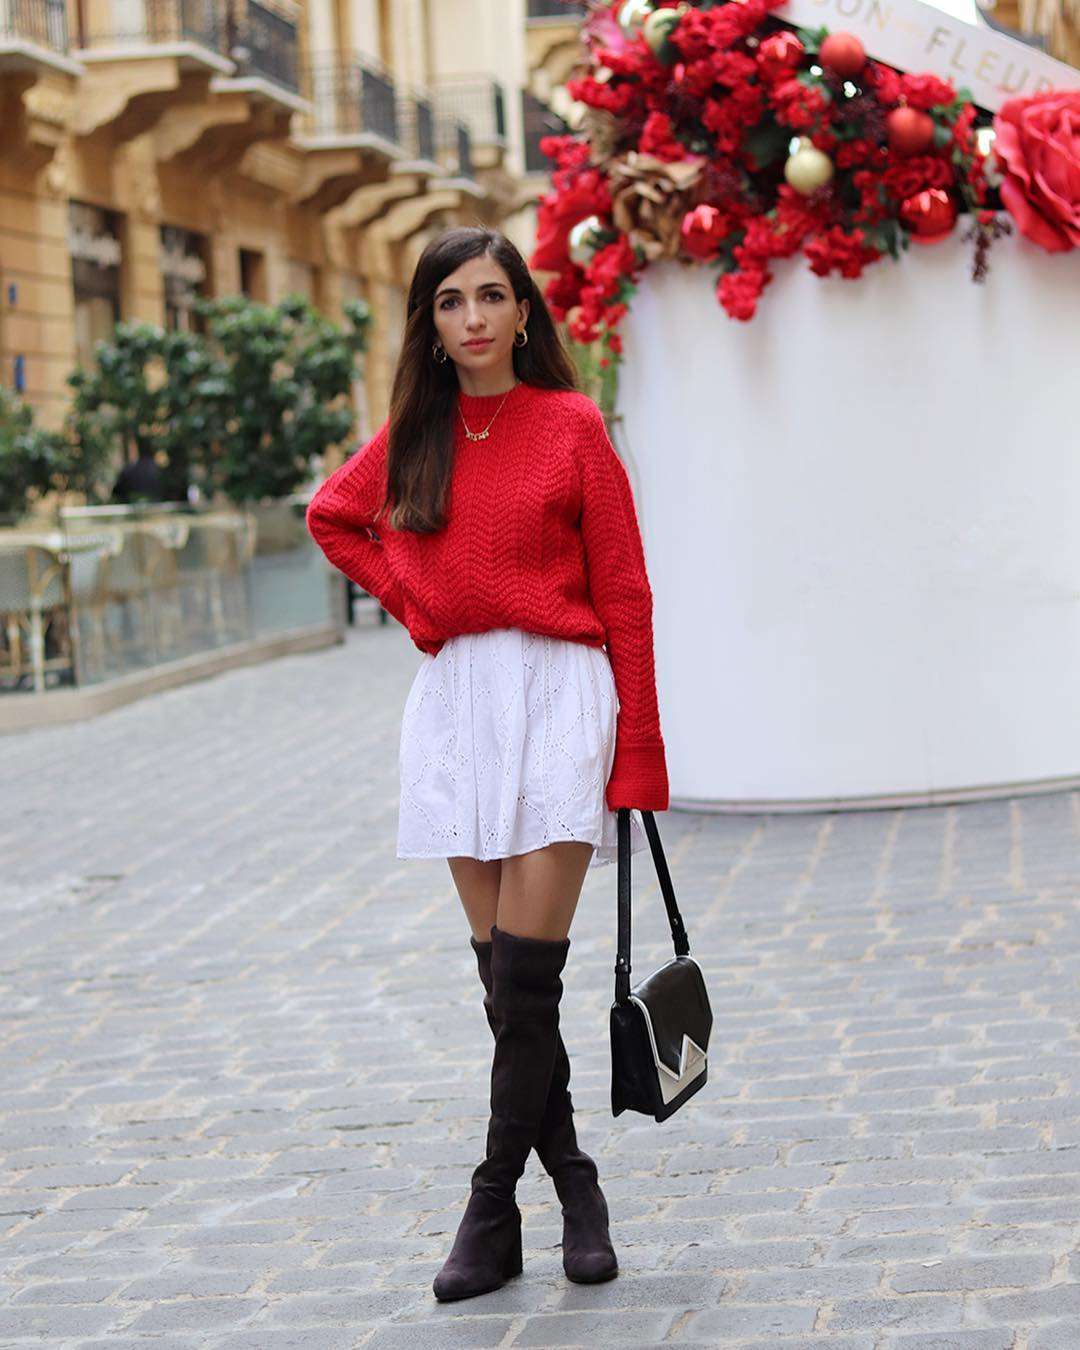 Red Sweater Over White Shirtdress With   Black OTK Boots Outfit